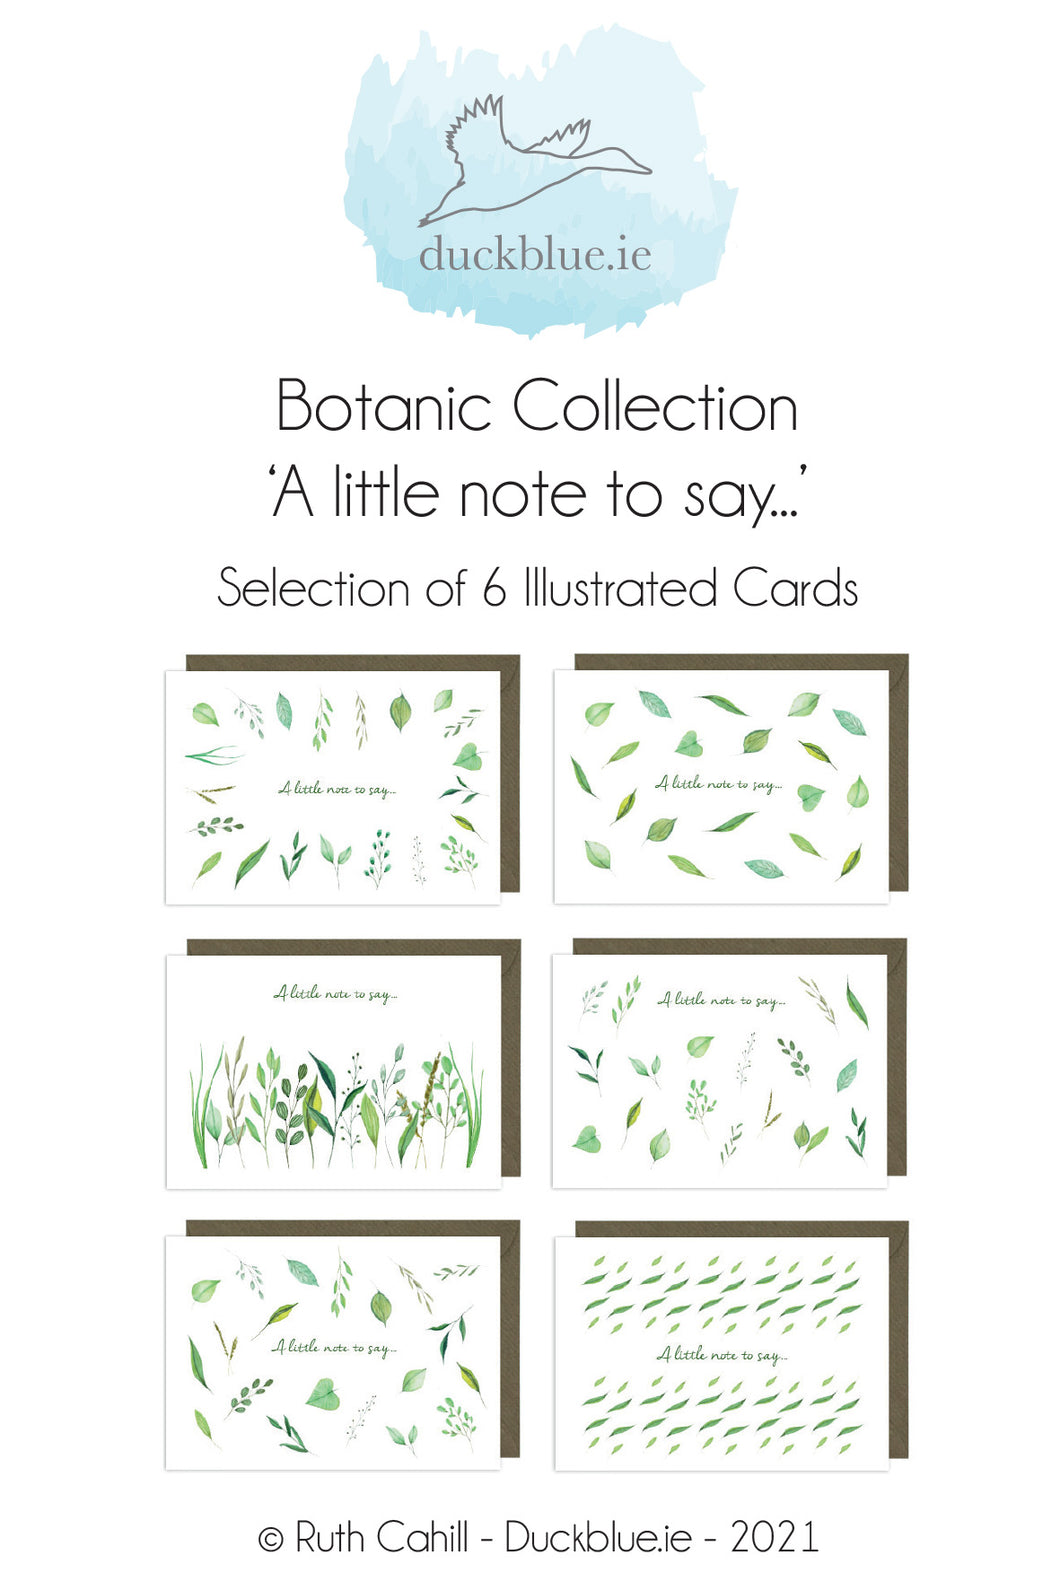 Botanic Collection - A little note to say...